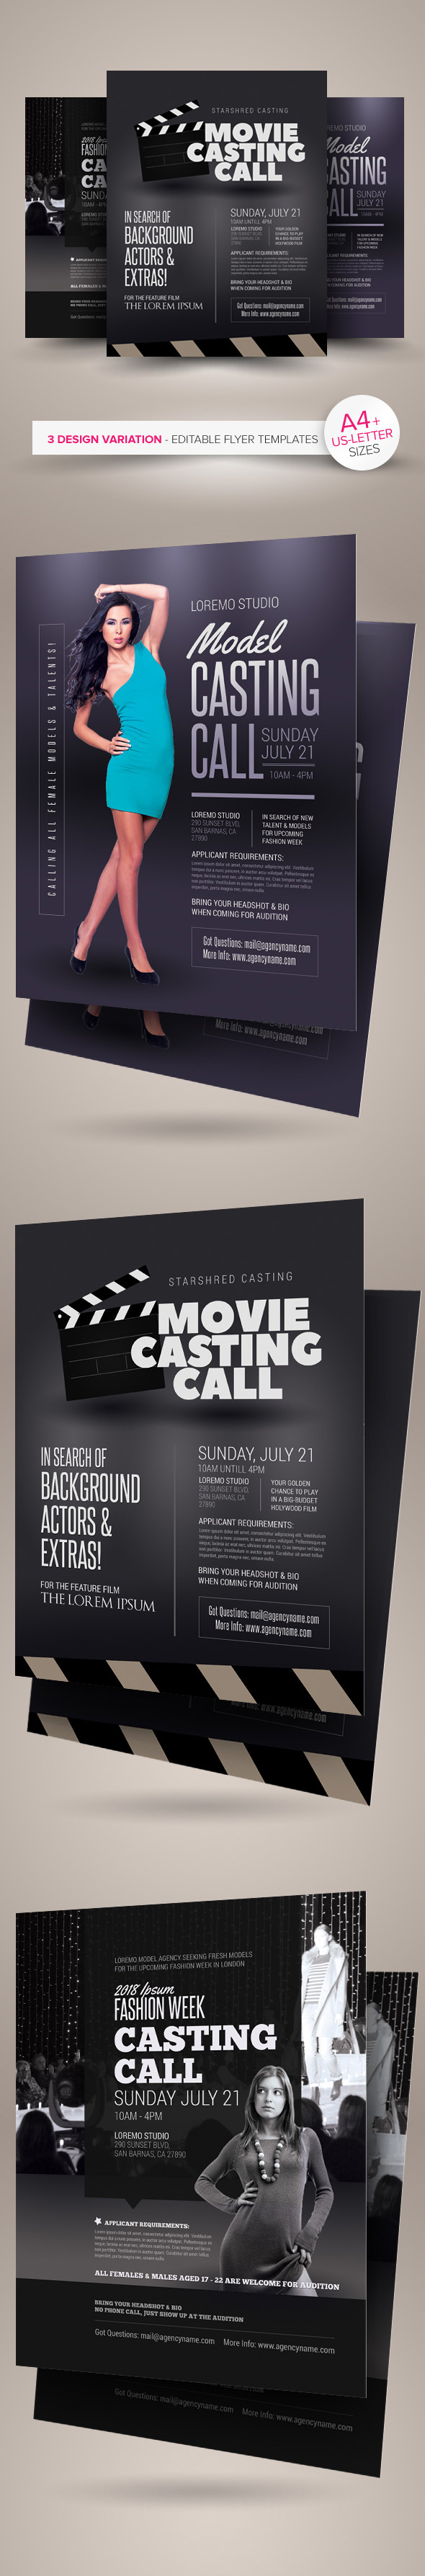 casting call flyer templates on behance casting call flyer templates are fully editable design templates created for on graphic river more info of the templates and how to get the sourcefile